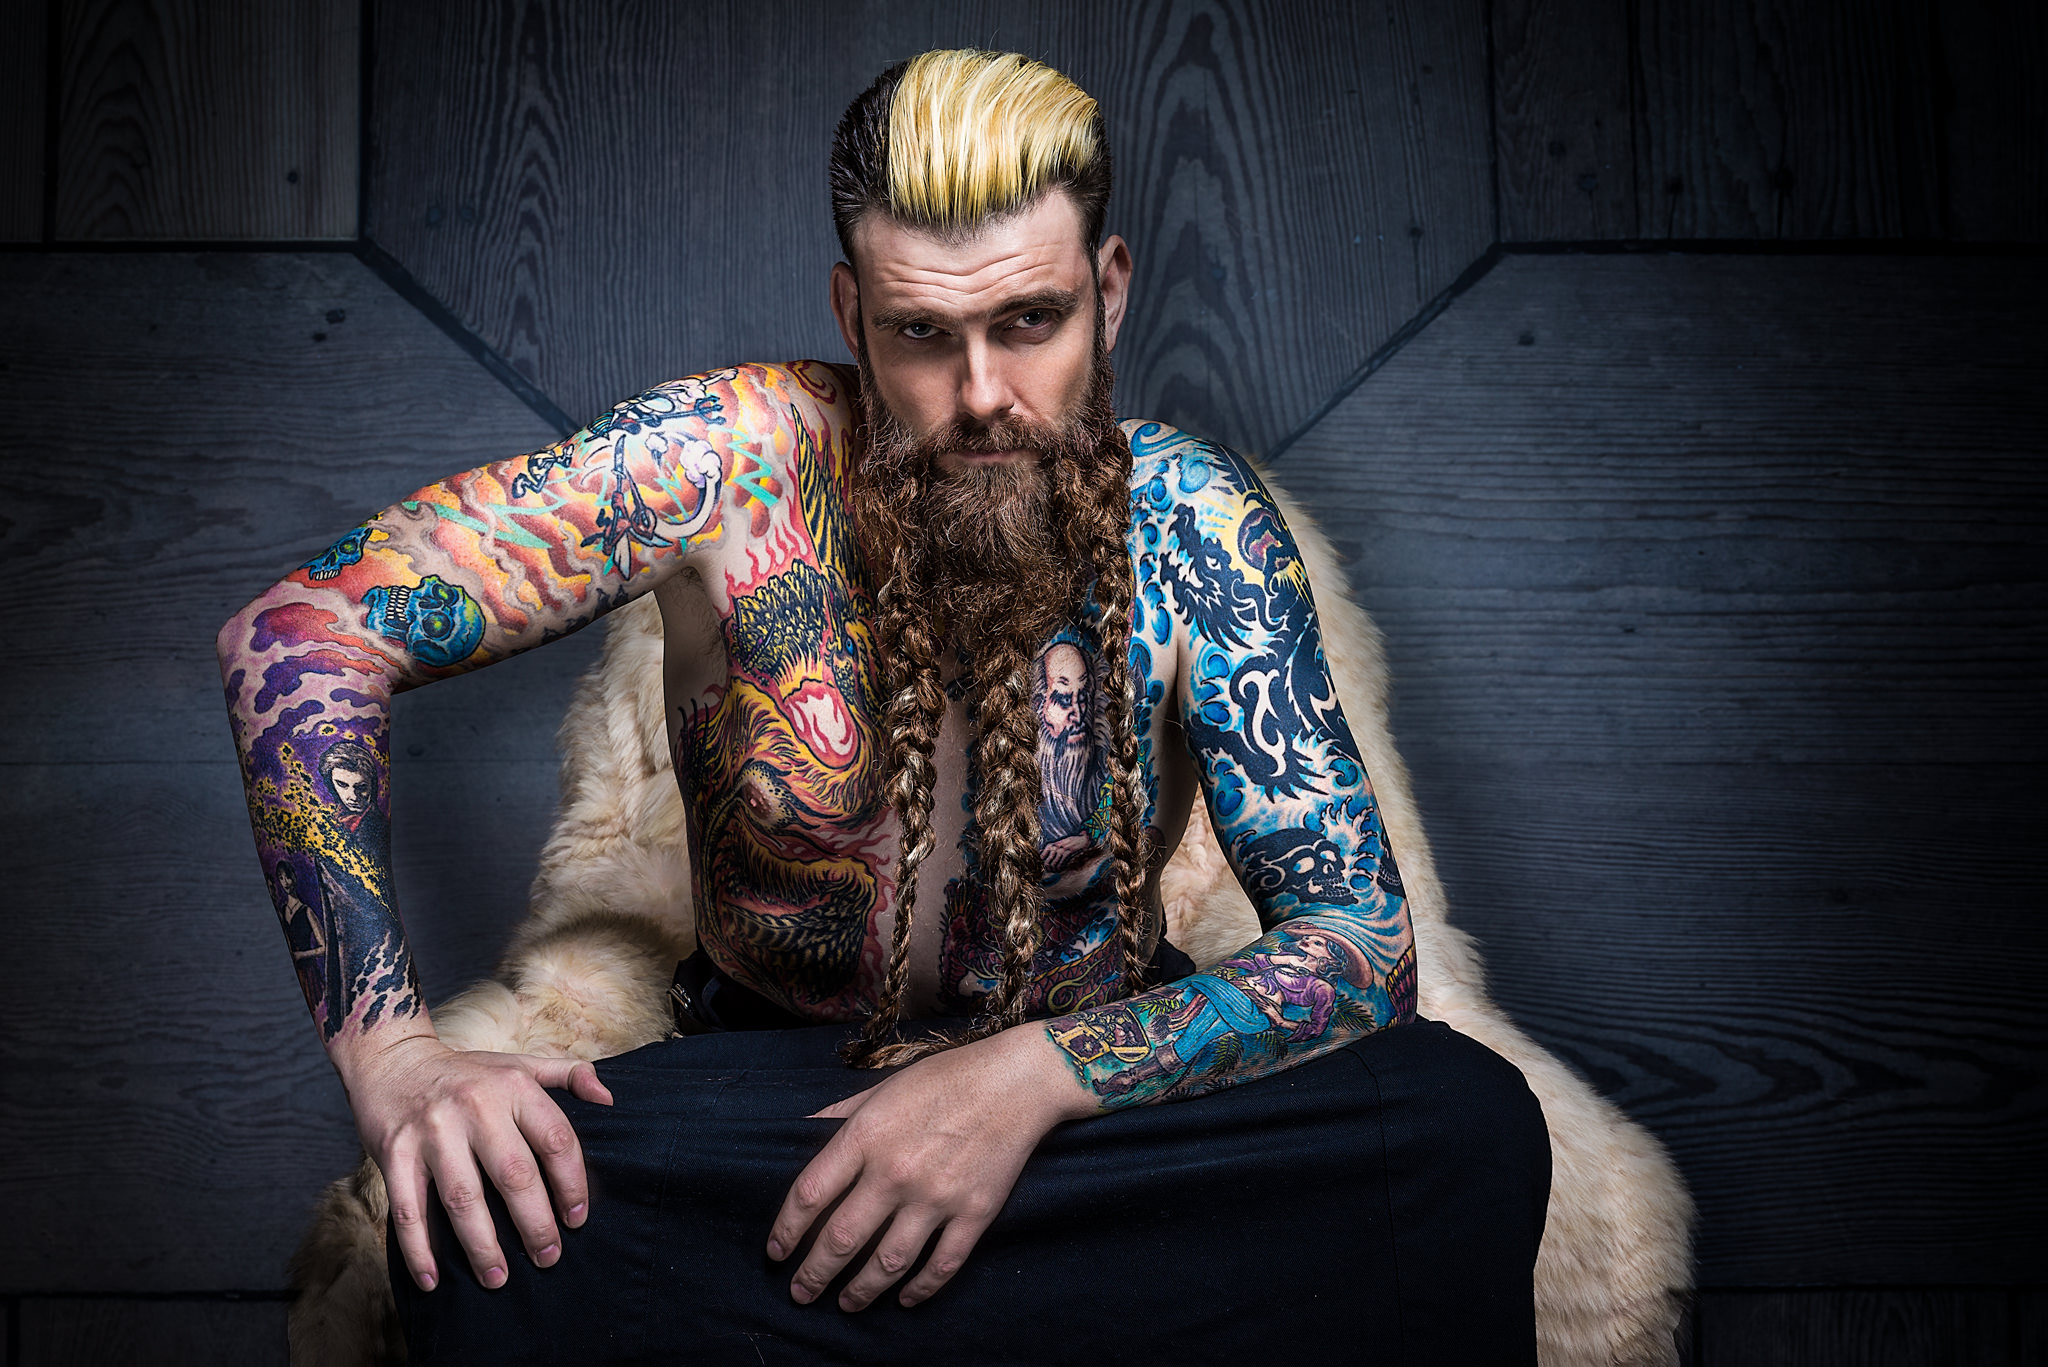 Tattoomodels Photographer Sedcard Of Ben Peter From Germany